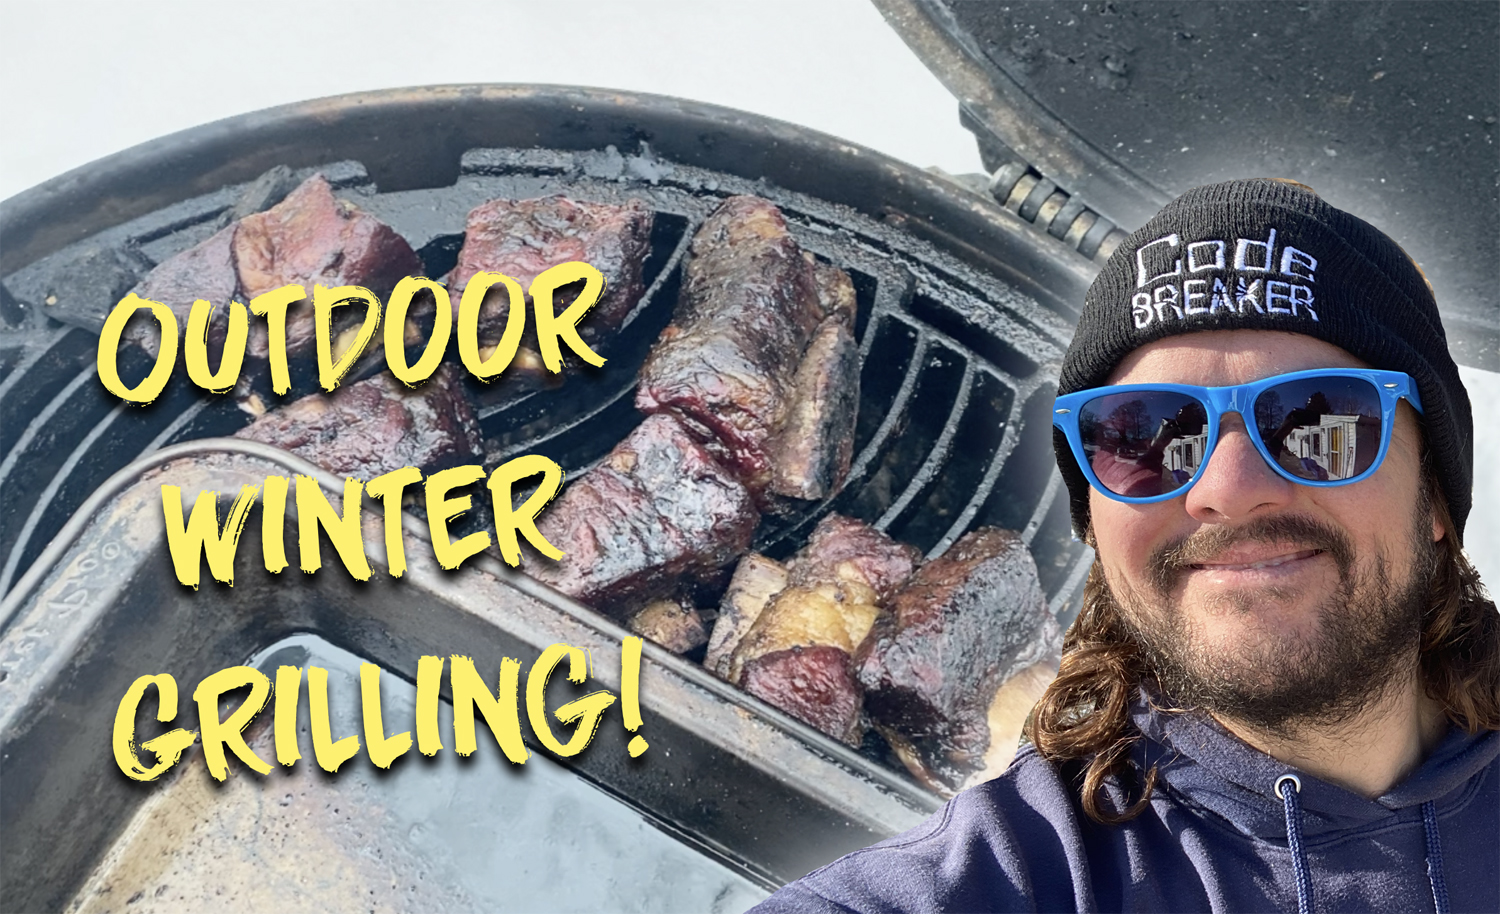 Outdoor Winter Grilling!